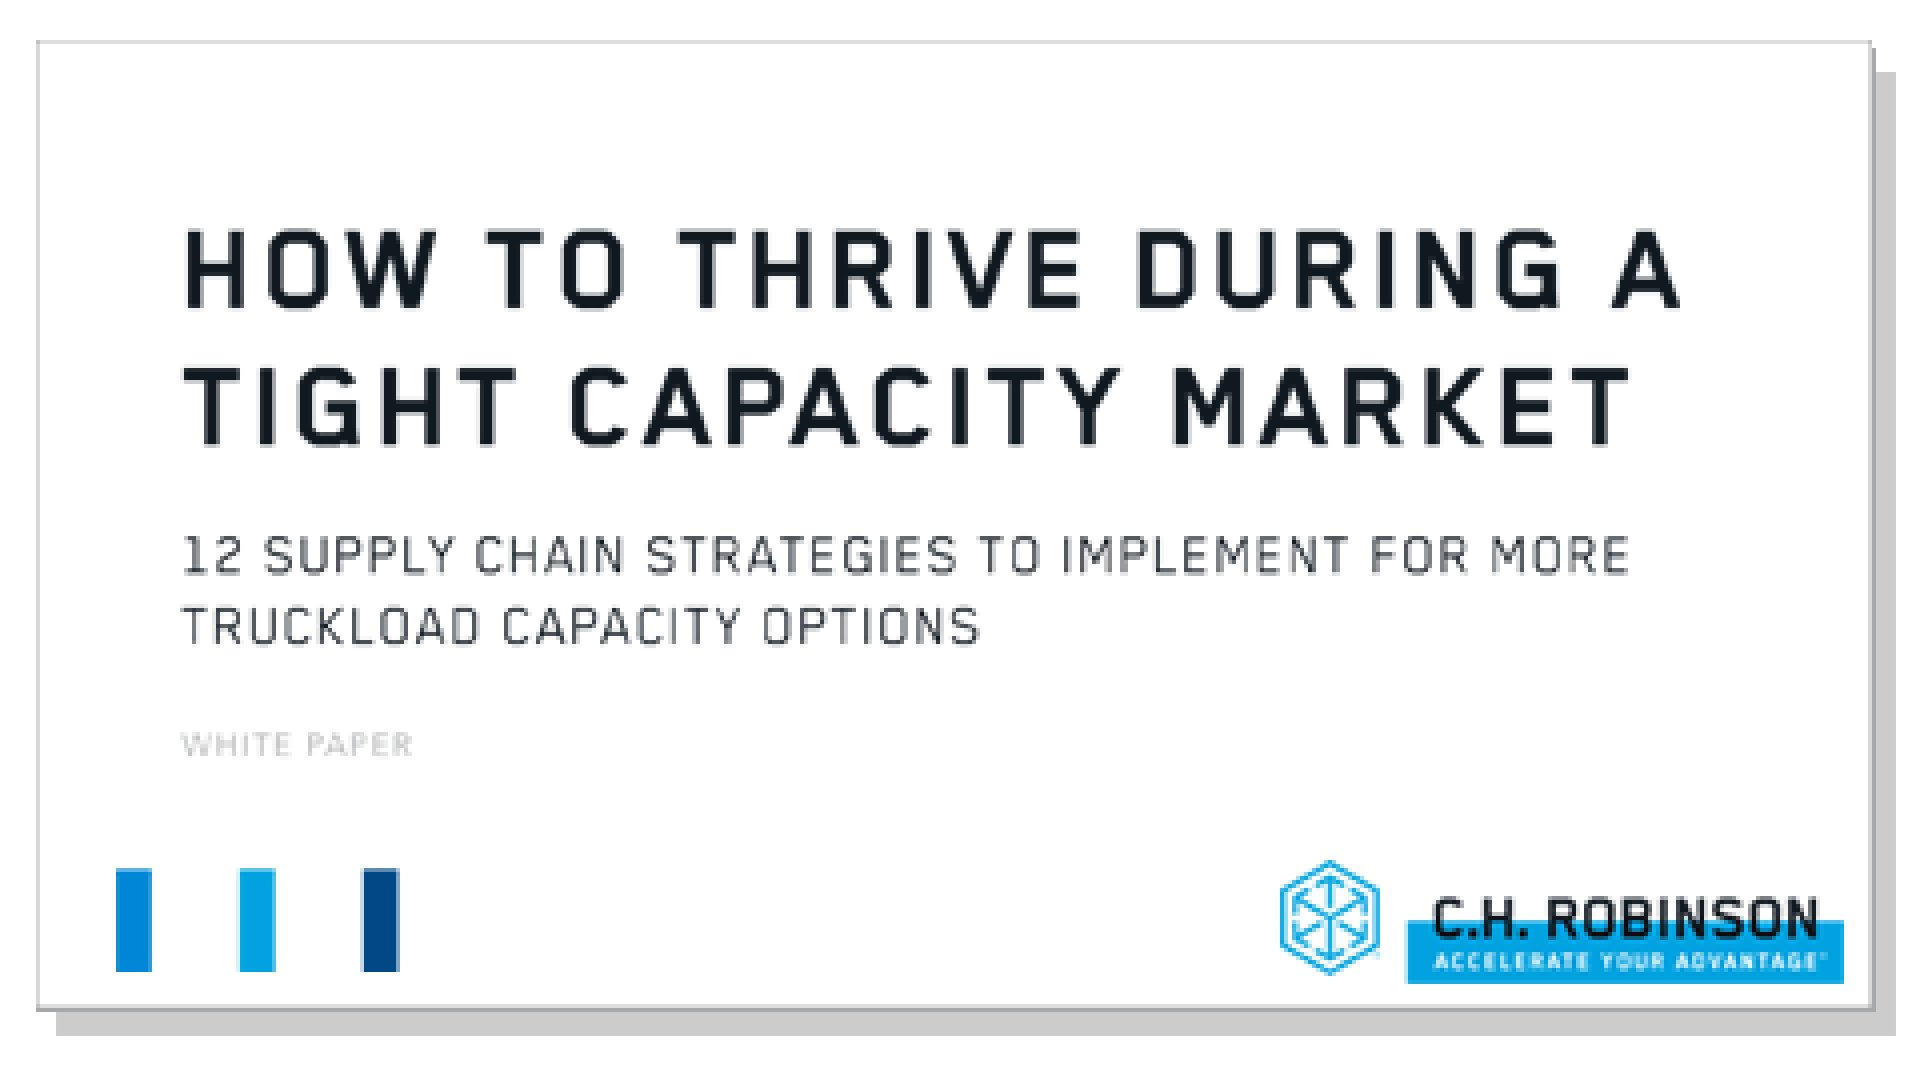 HOW TO THRIVE DURING A TIGHT CAPACITY MARKET